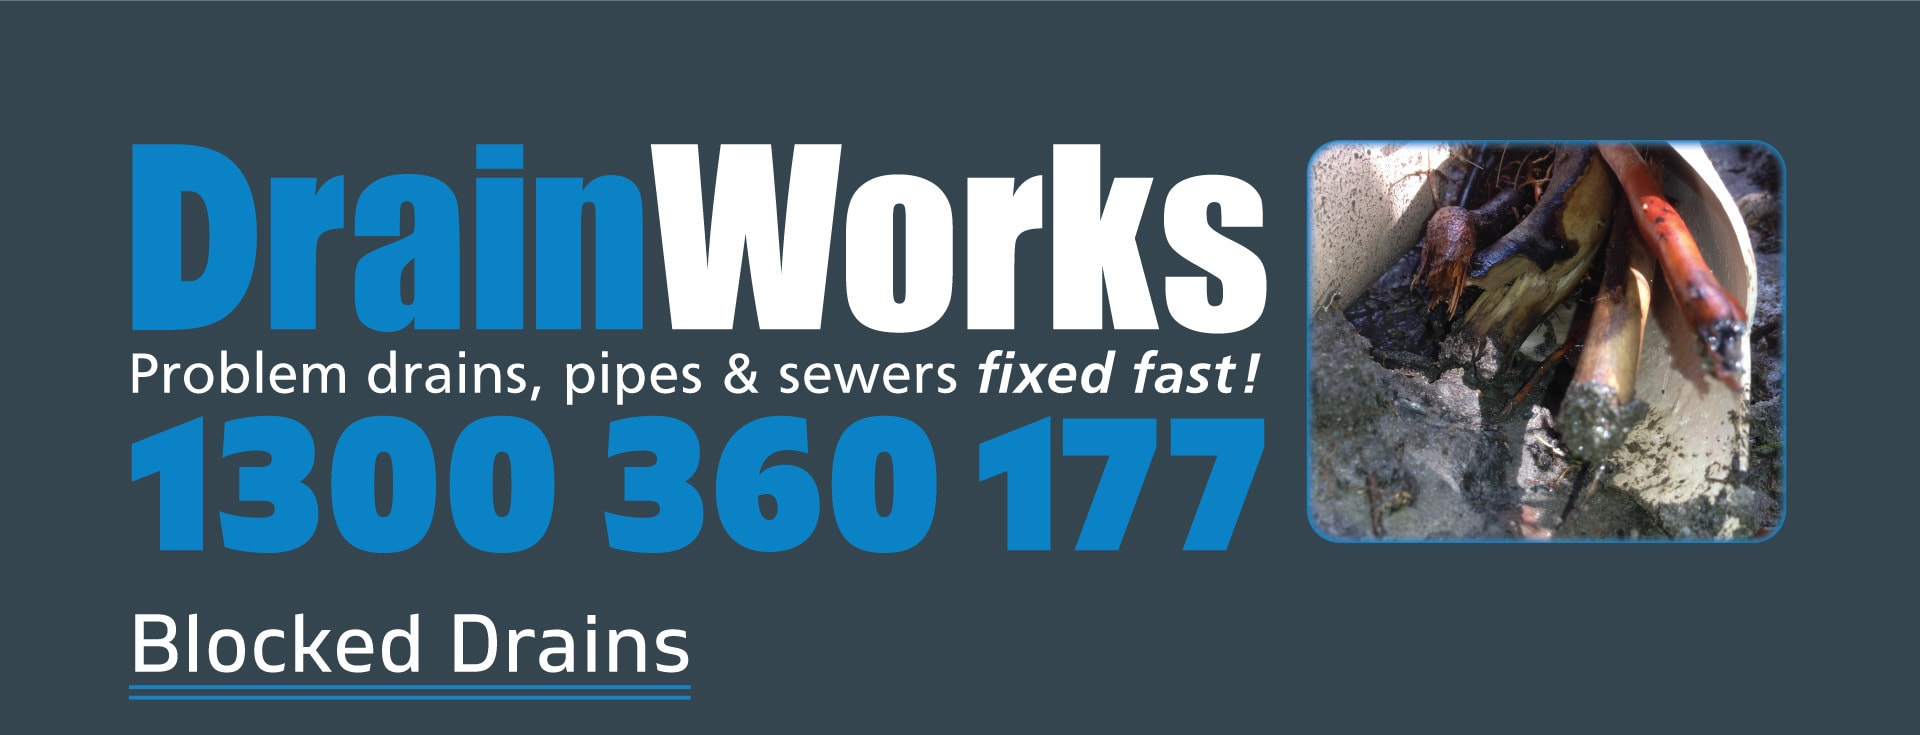 DrainWorks Blocked Drains